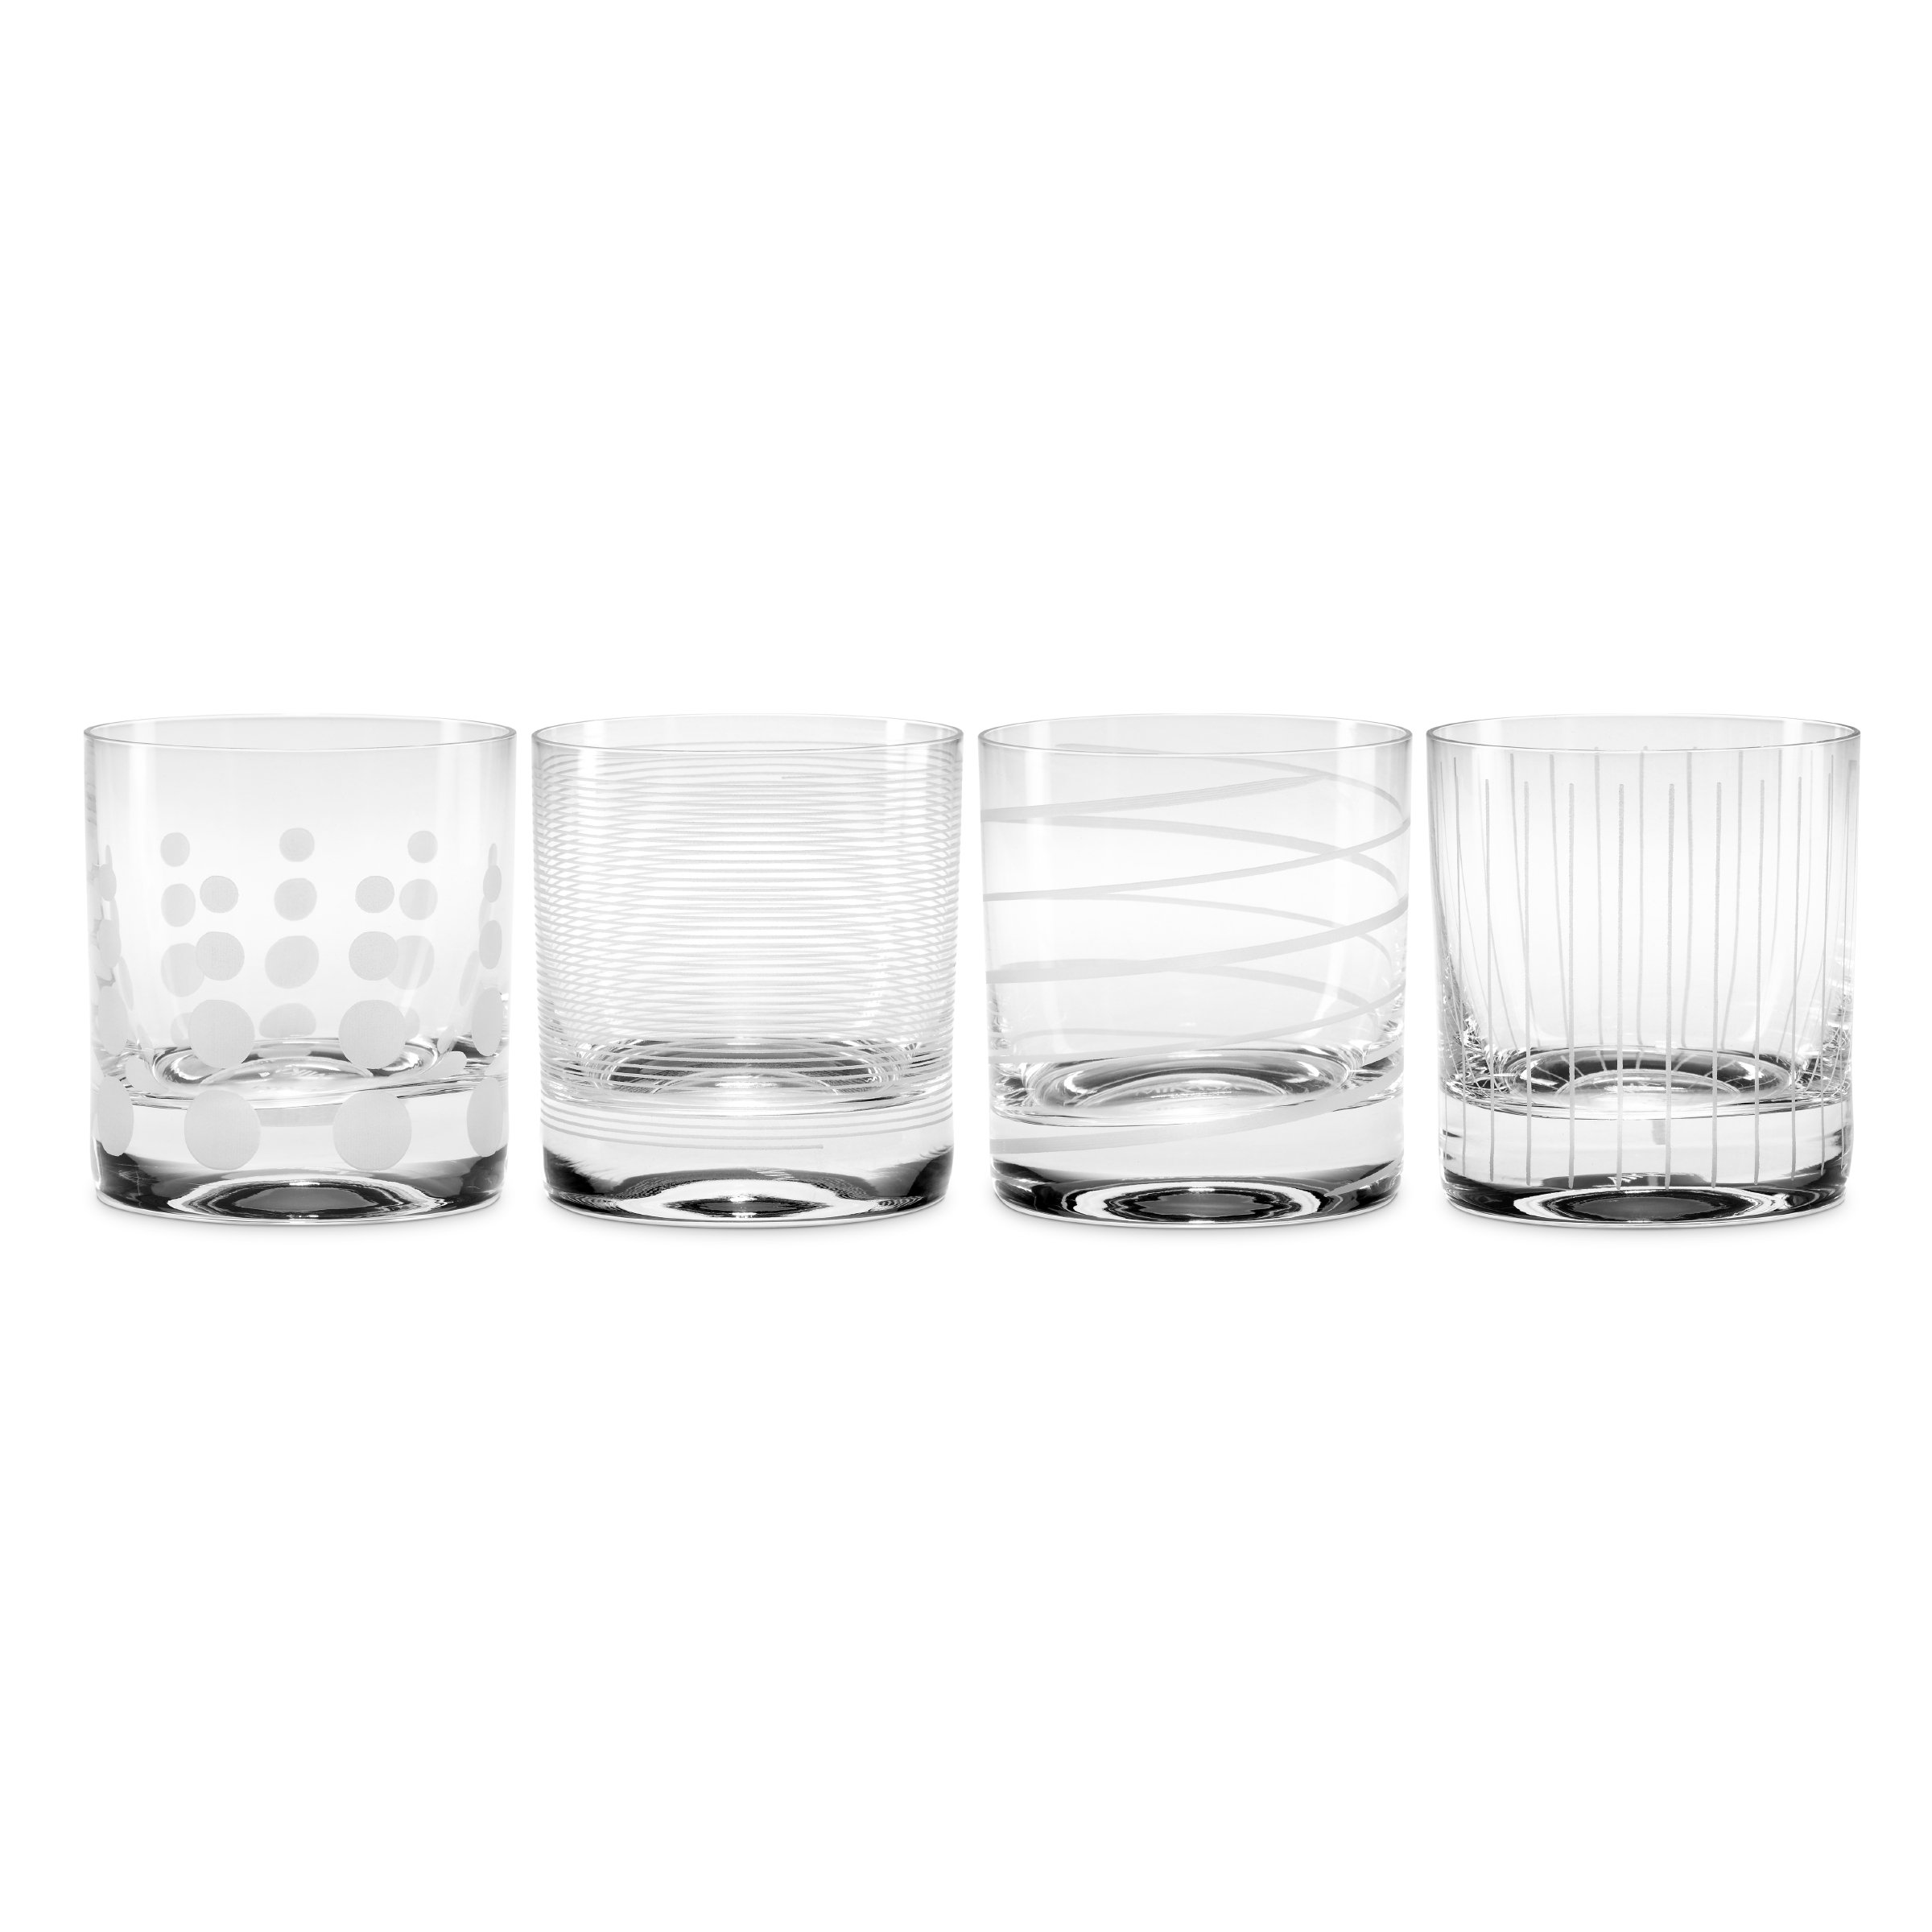 Mikasa Cheers Double Old Fashioned Glass, 12.75-Ounce, Set of 4 by Mikasa